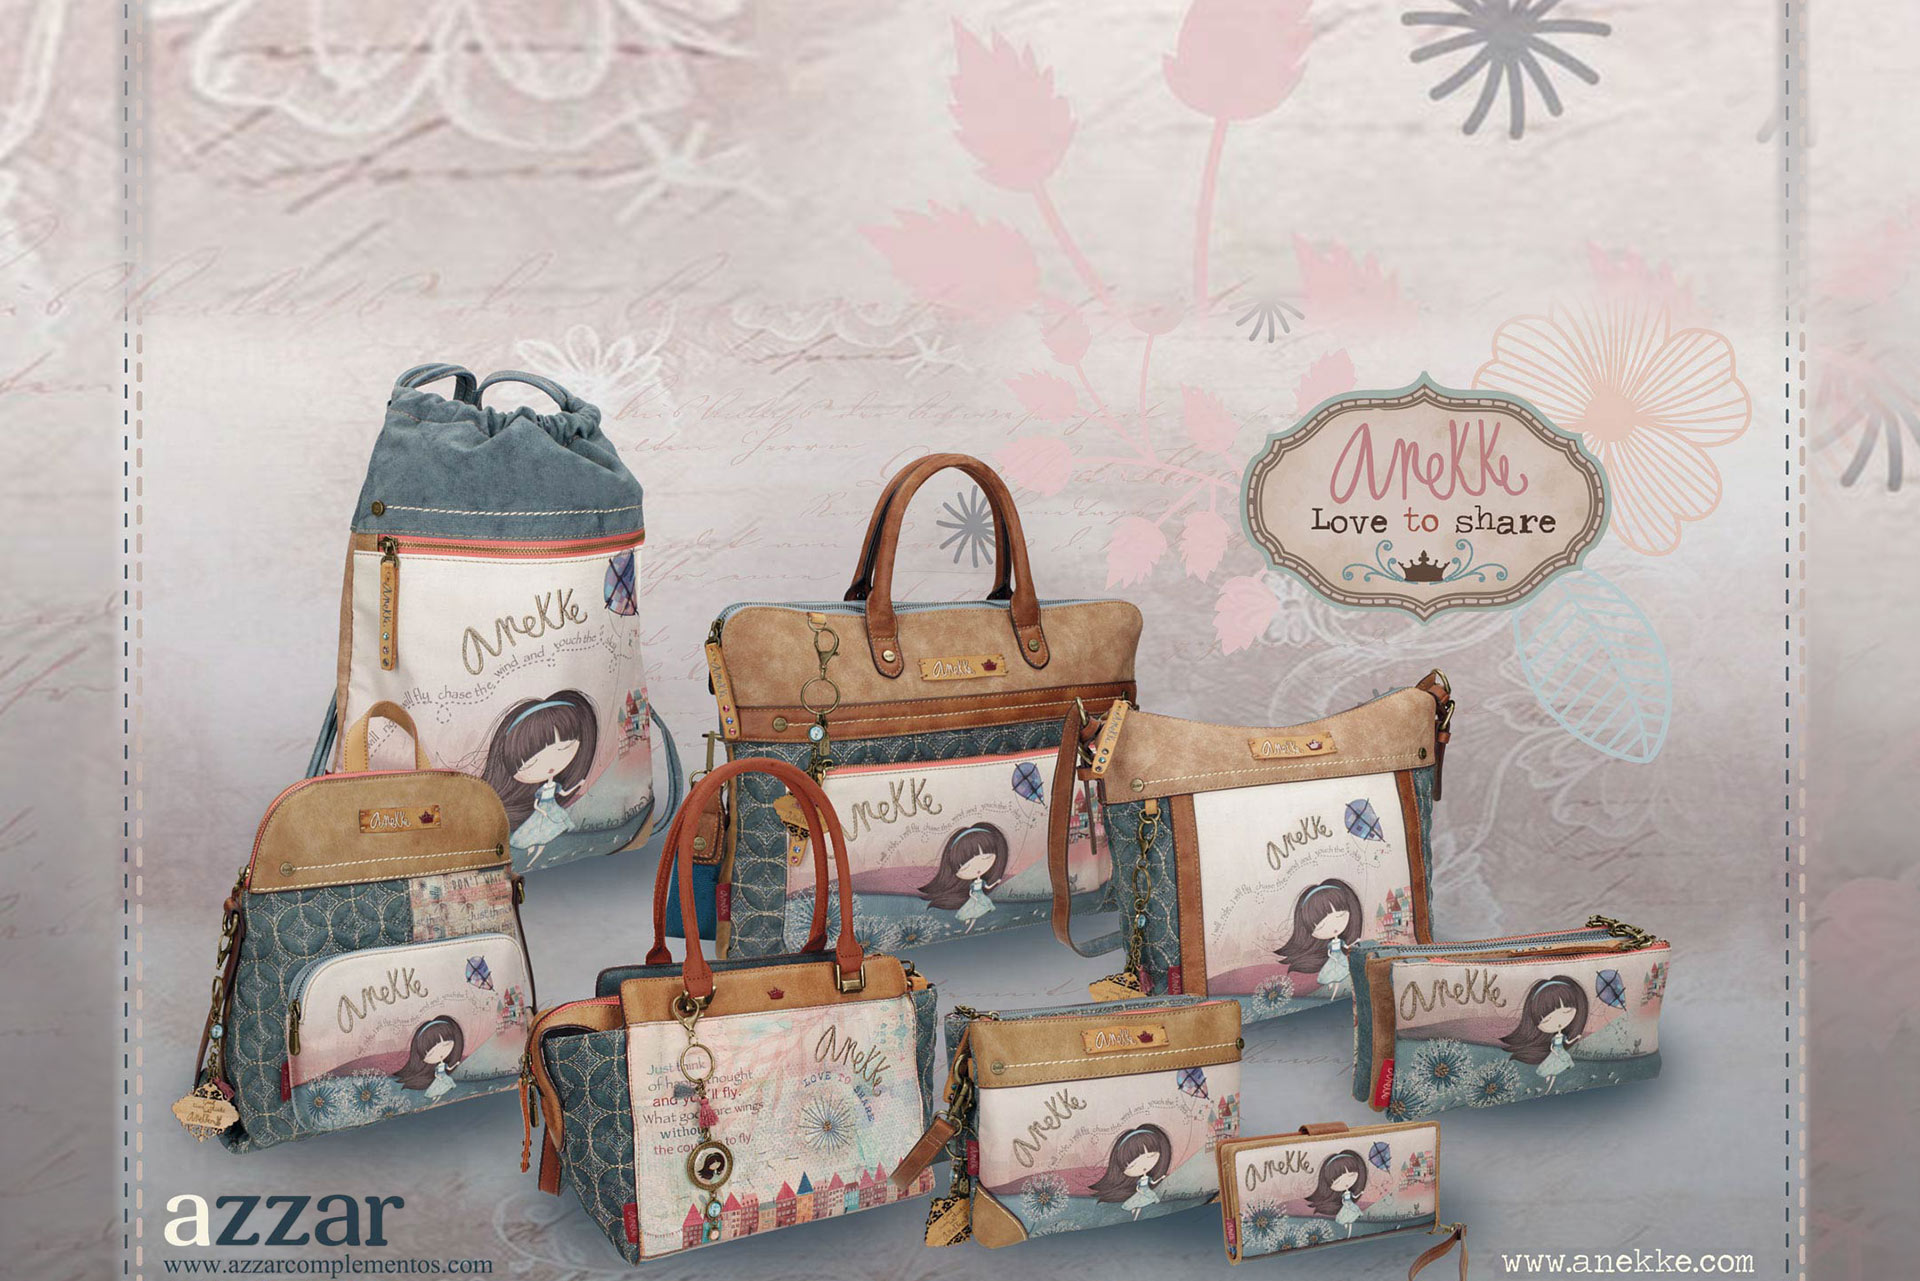 anekke bags collection